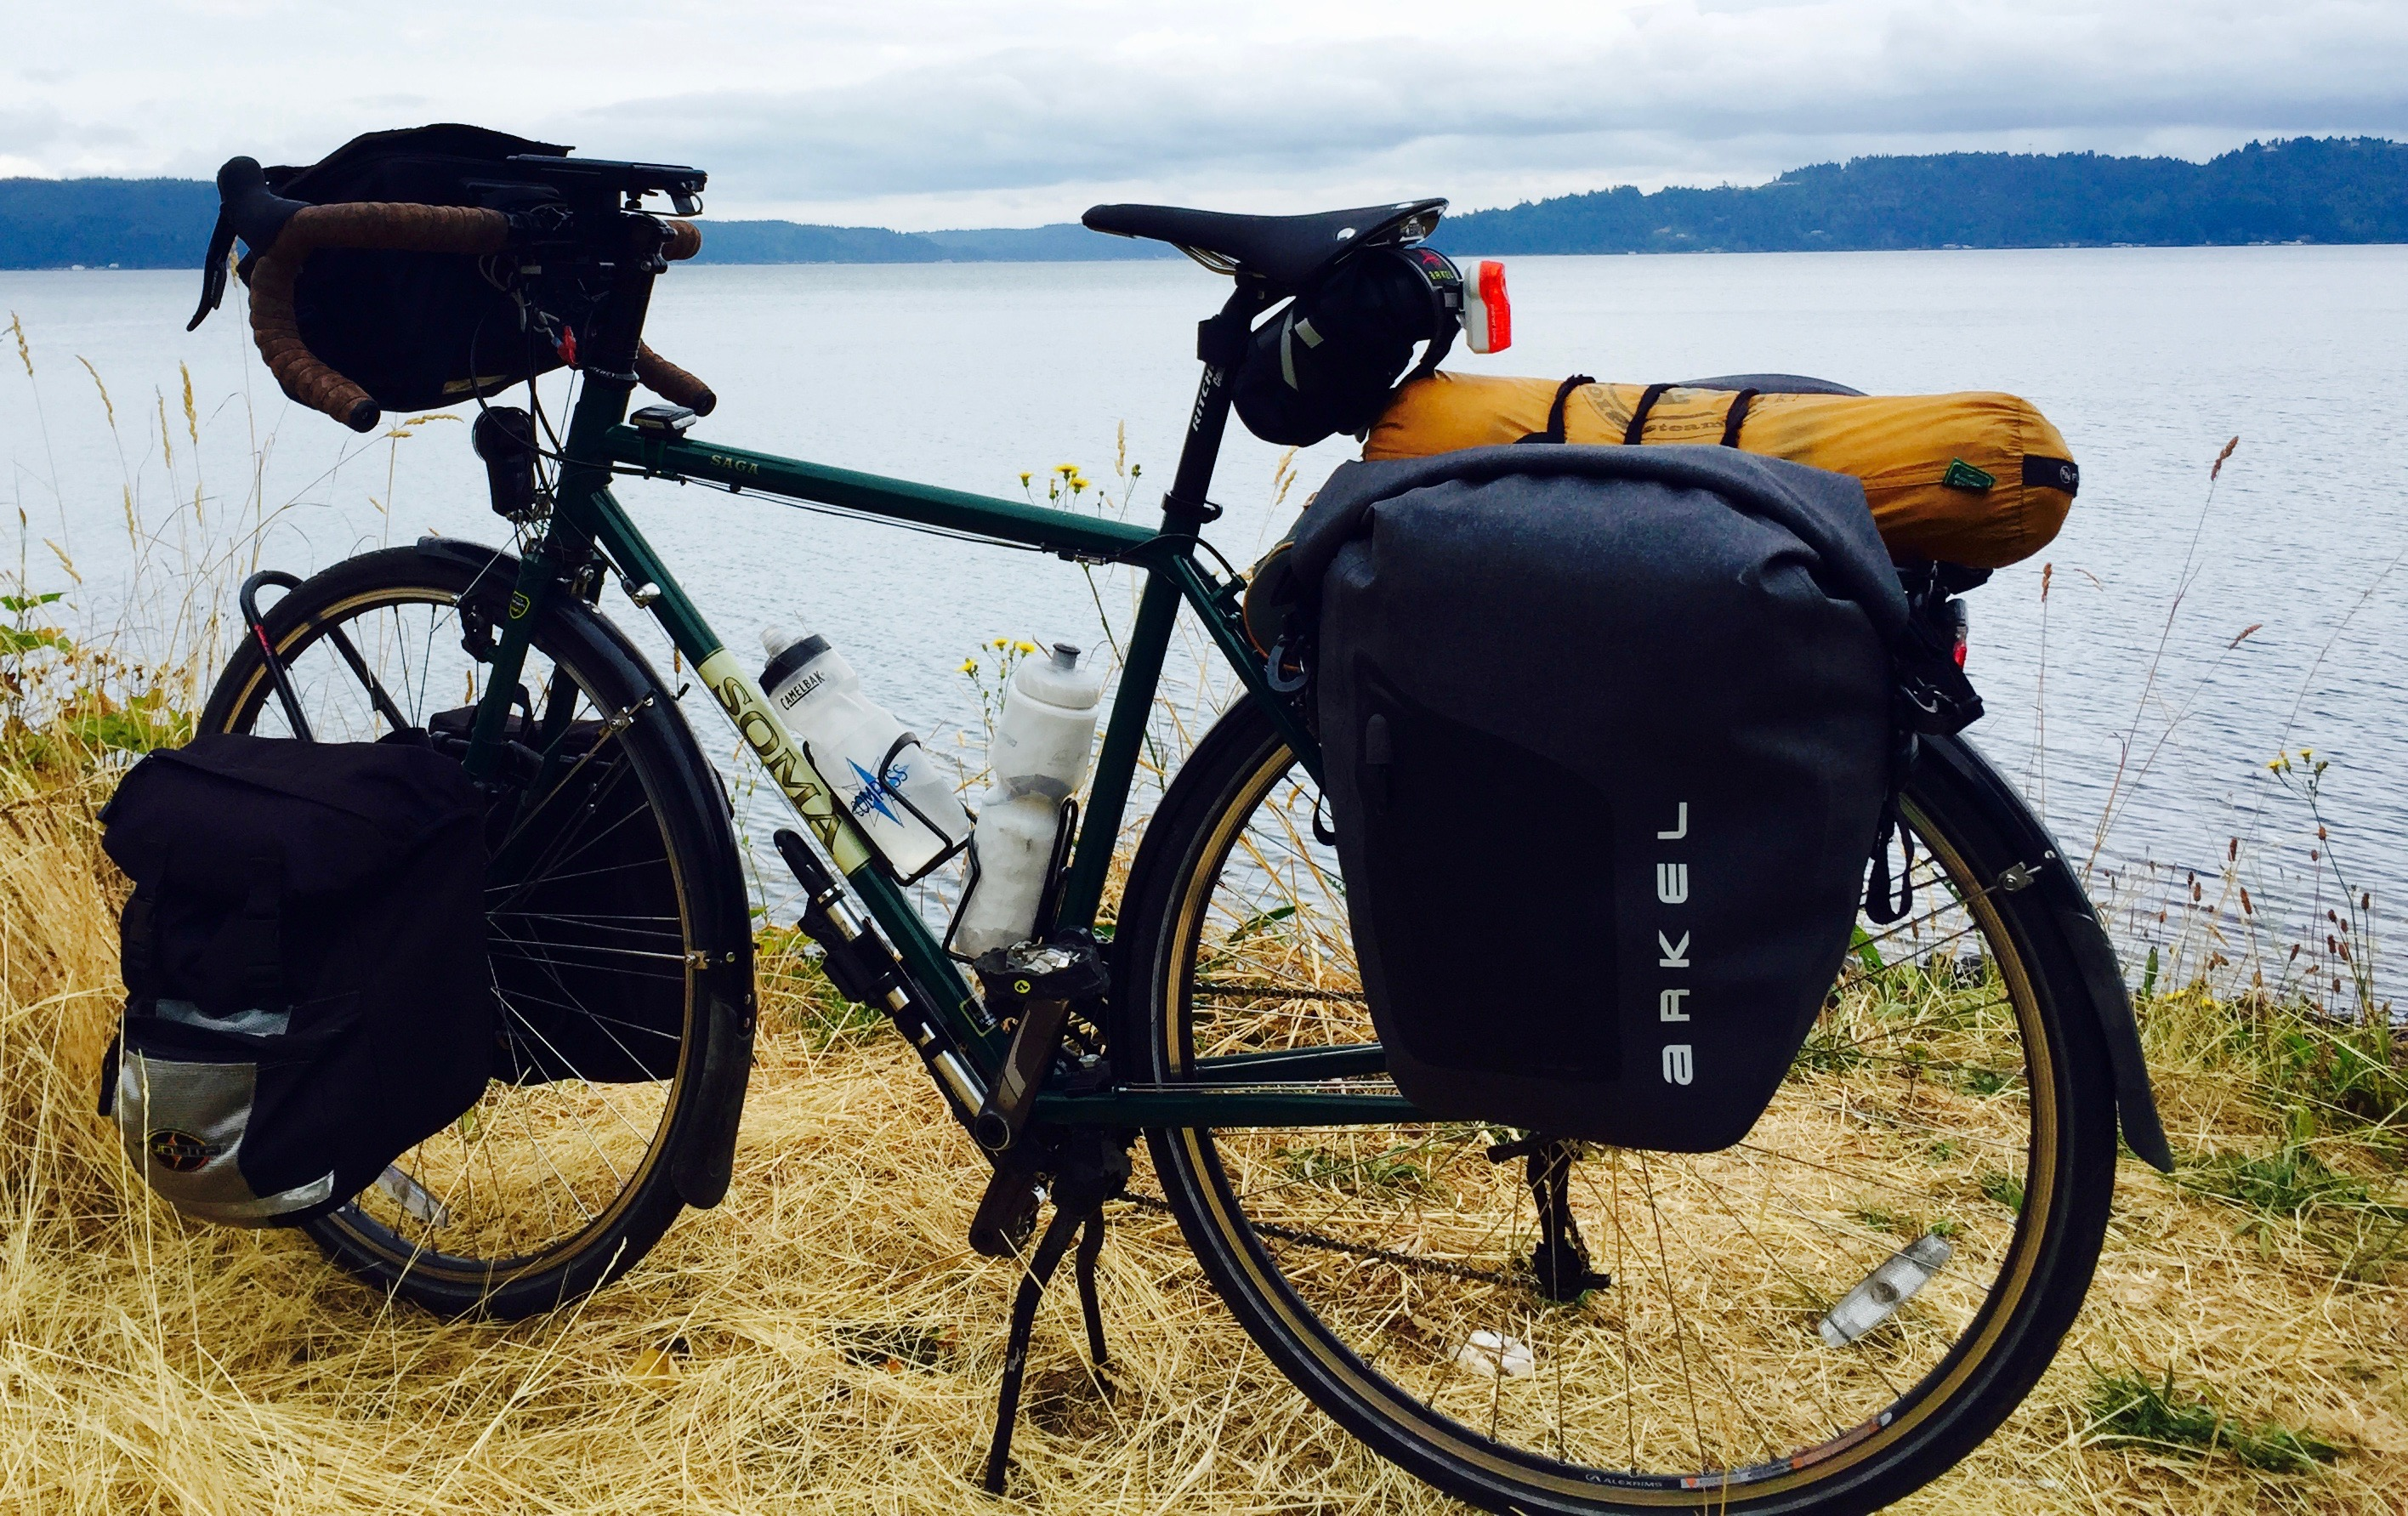 Soma Saga with Arkel Orca panniers